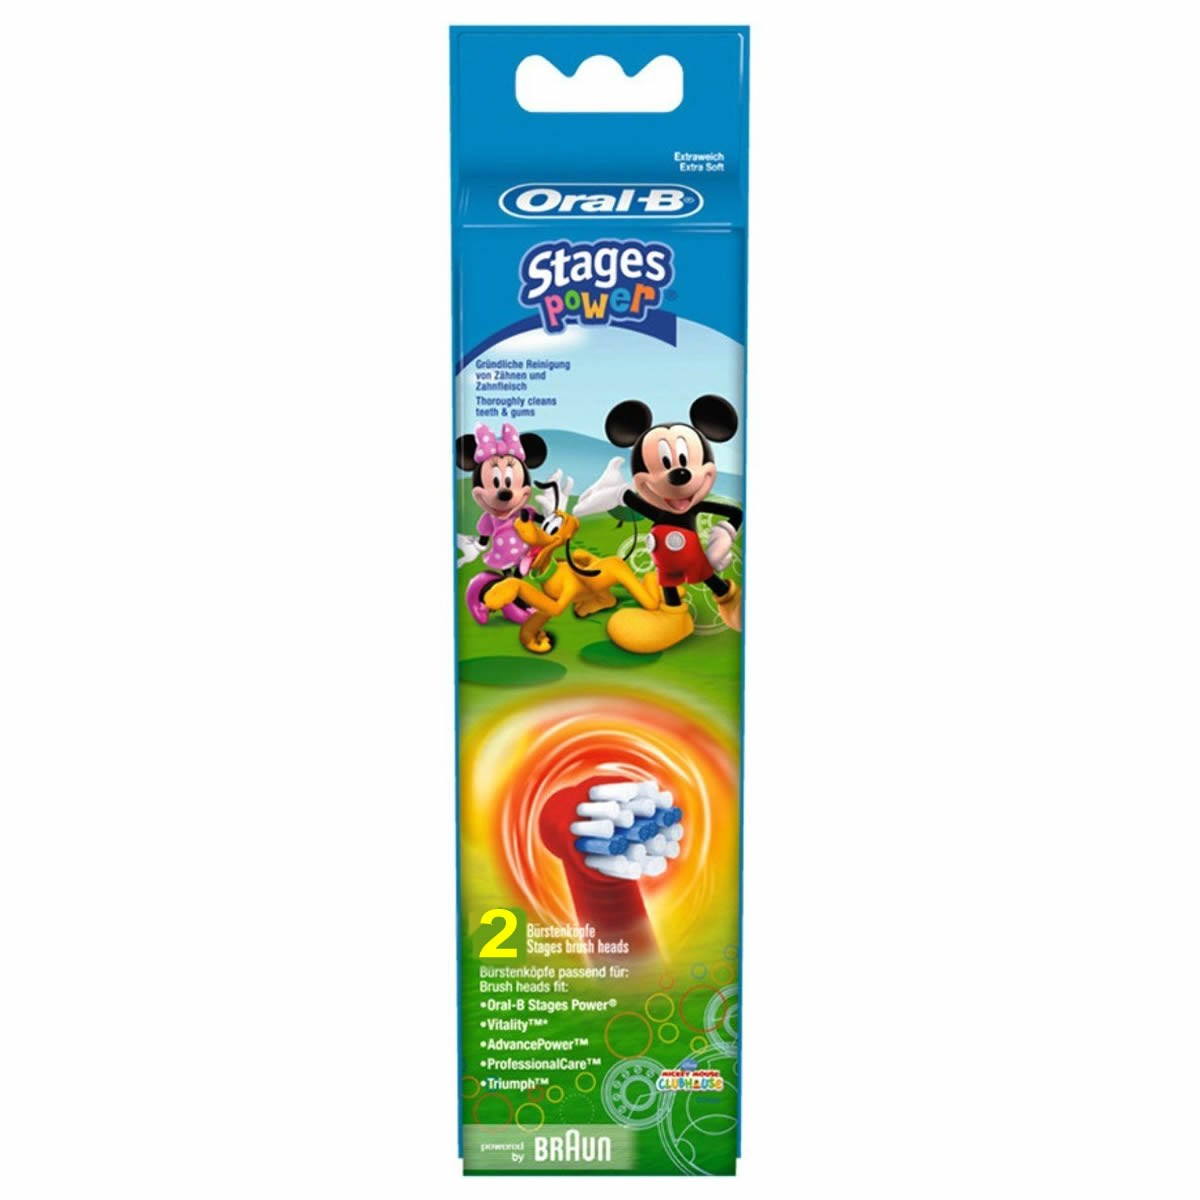 Oral-B Stages Power Kids Electric Toothbrush Replacement Heads